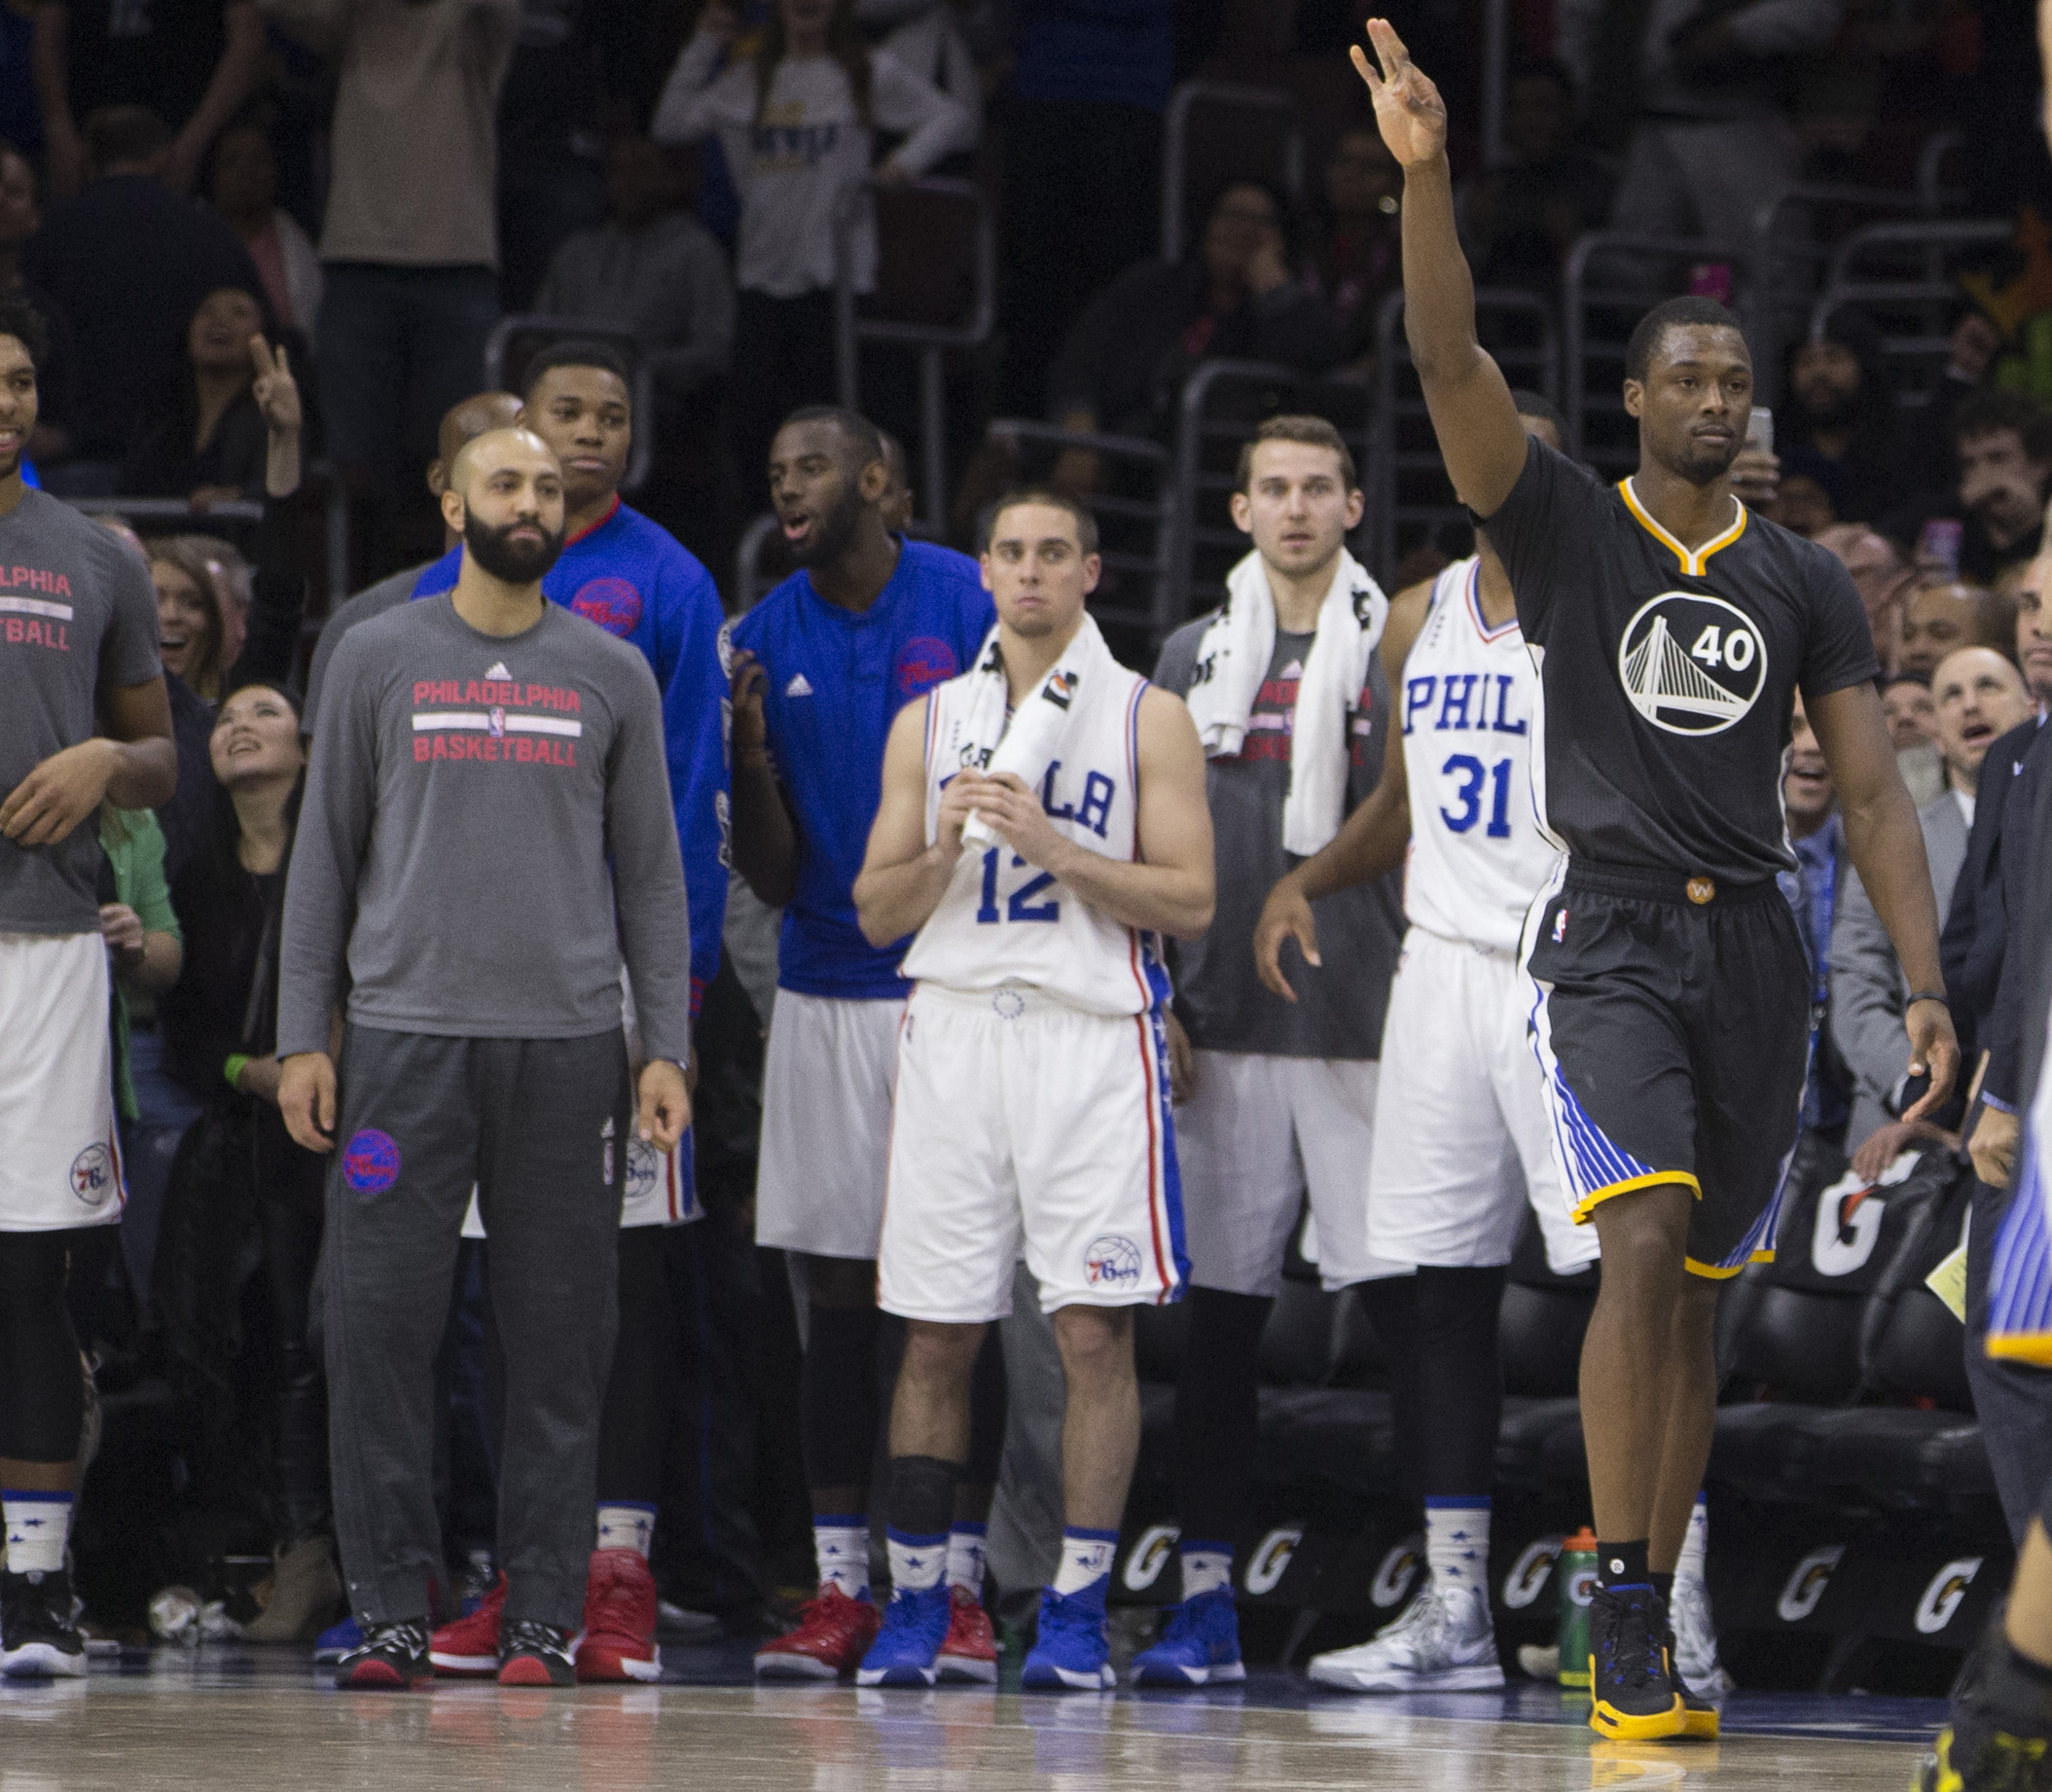 PHILADELPHIA, PA - JANUARY 30: Harrison Barnes #40 of the Golden State Warriors reacts after making the game winning shot in front of the Philadelphia 76ers bench on January 30, 2016 at the Wells Fargo Center in Philadelphia, Pennsylvania. The Warriors de